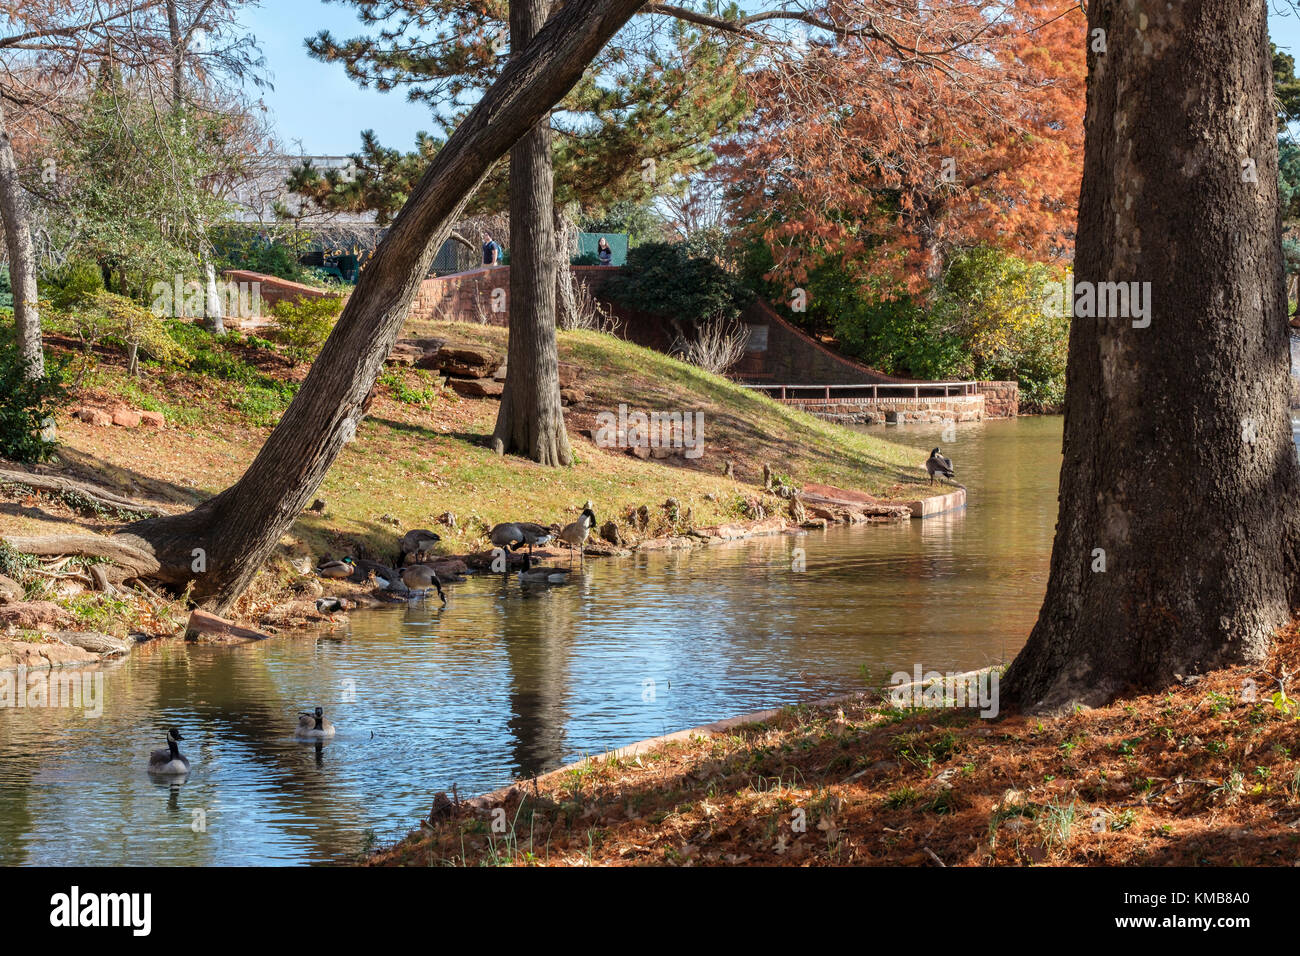 Canada Geese, Branta canadensis, swim in a creek in Will Rogers park in Oklahoma City, Oklahoma, USA in the autumn. - Stock Image